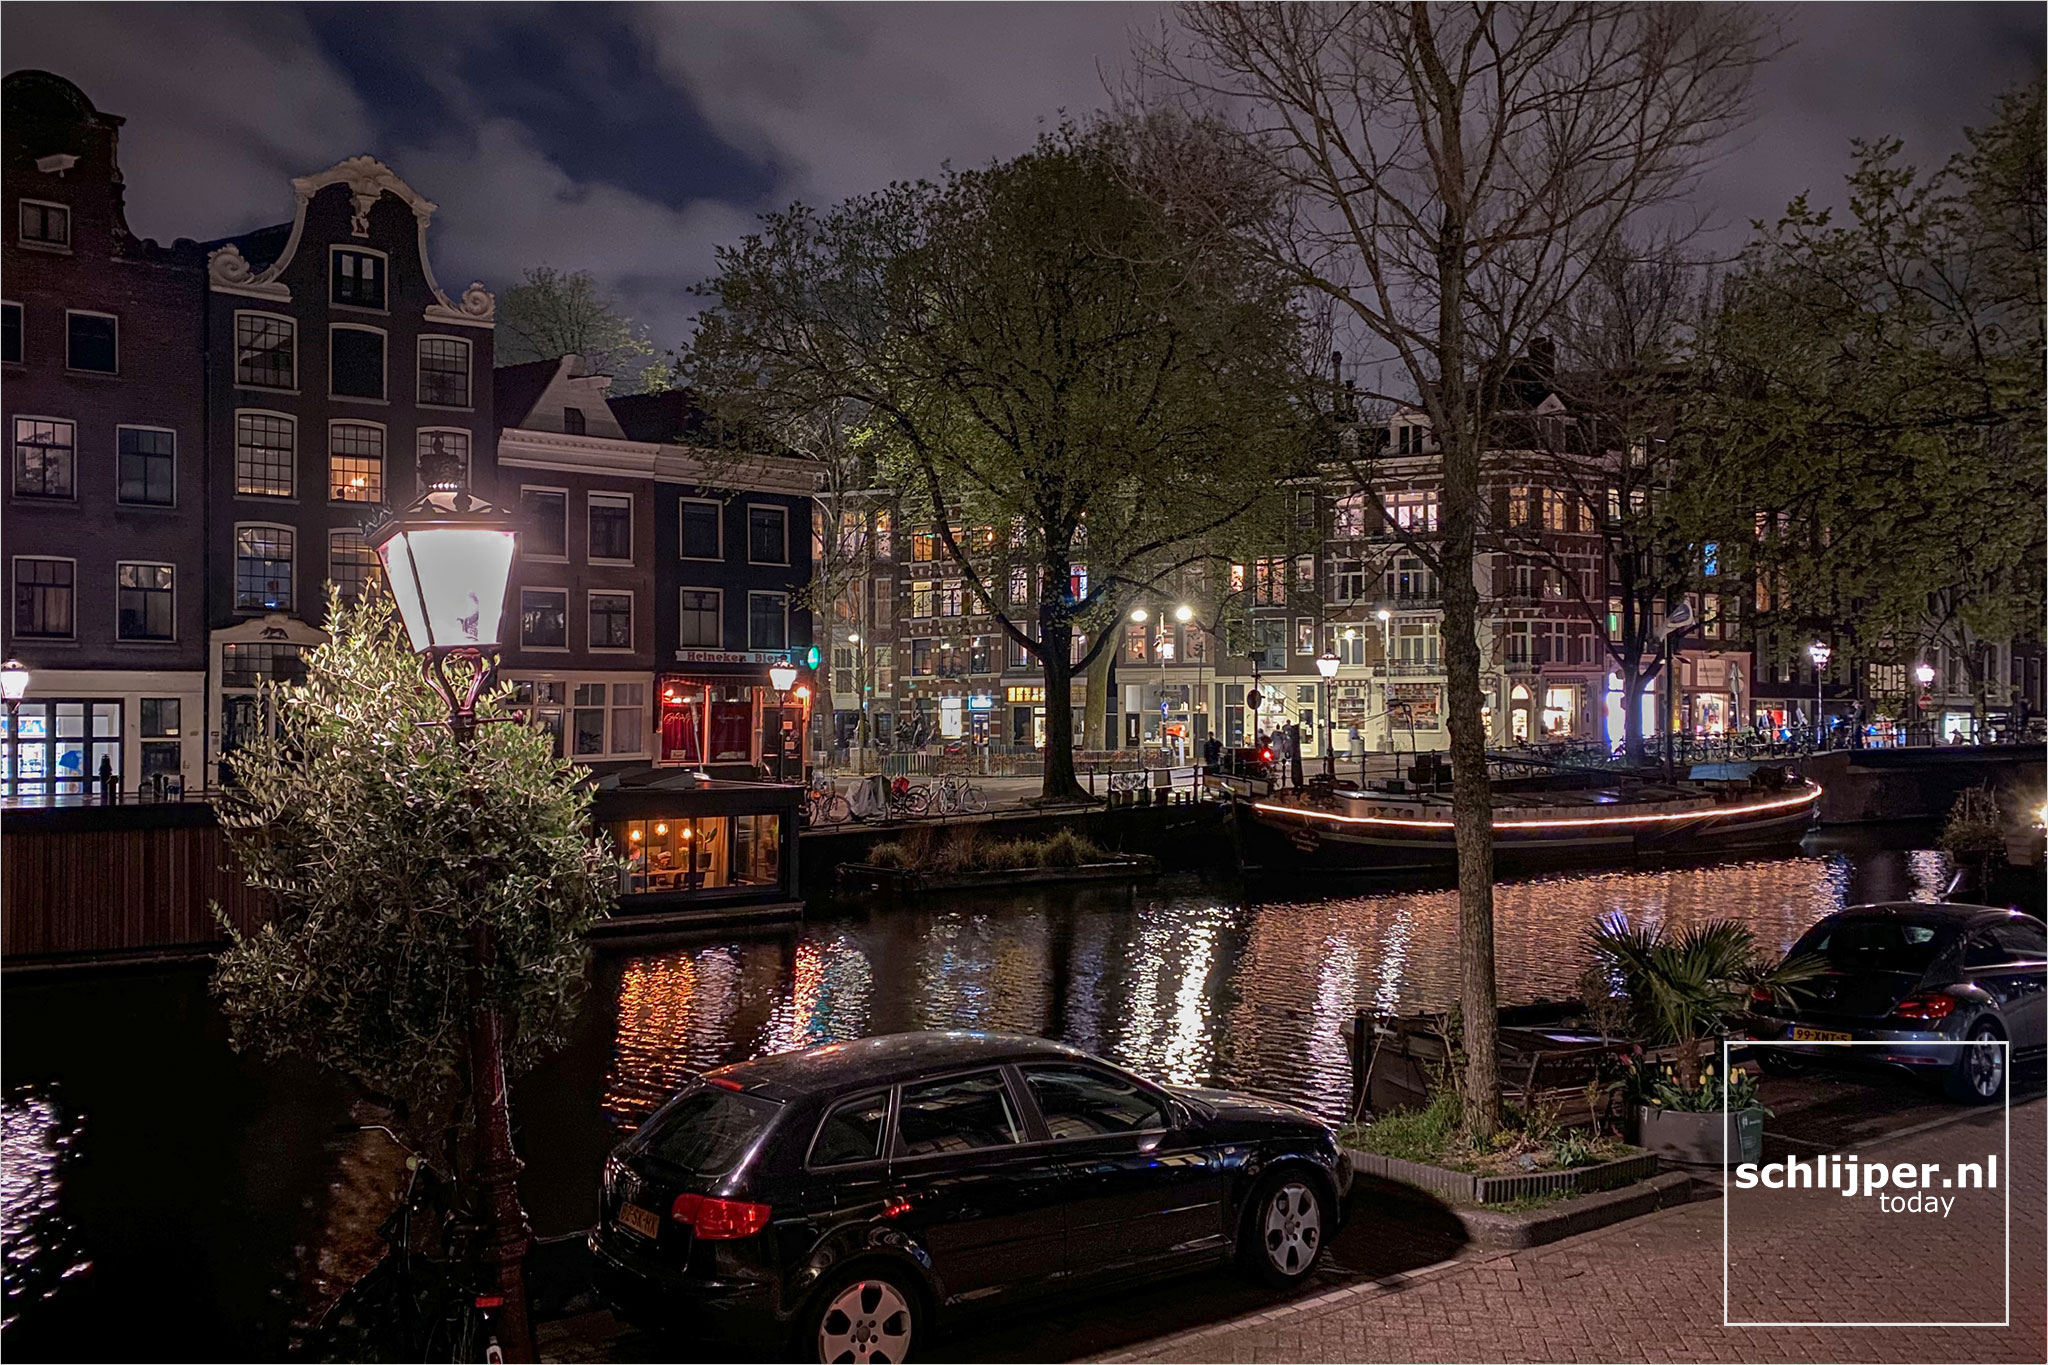 The Netherlands, Amsterdam, 2 april 2021